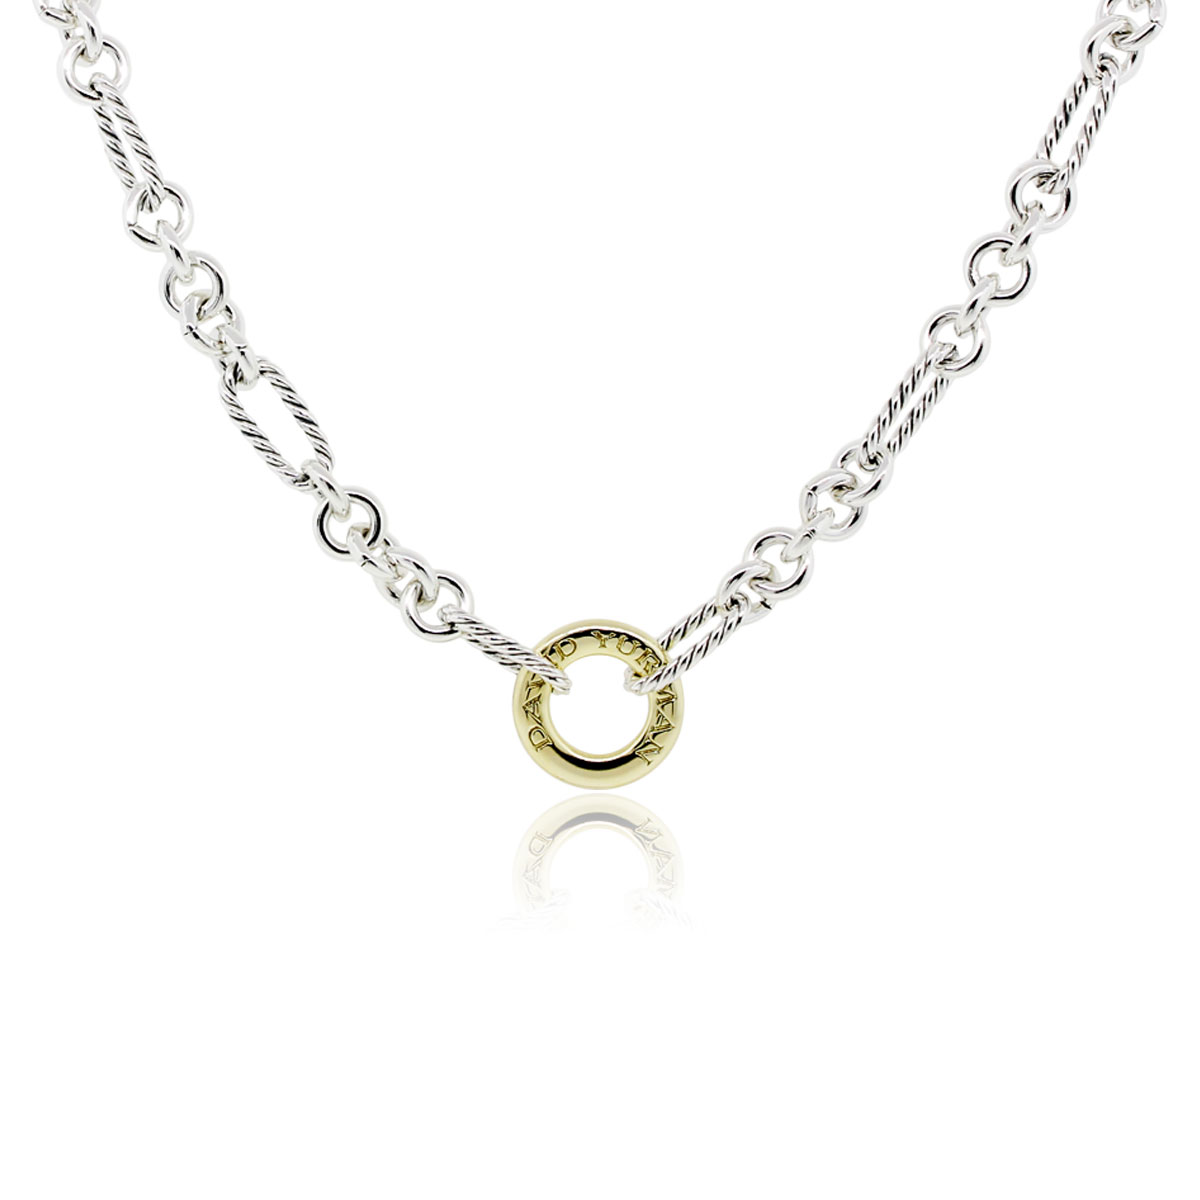 David yurman figaro two tone link chain necklace for David yurman like bracelets